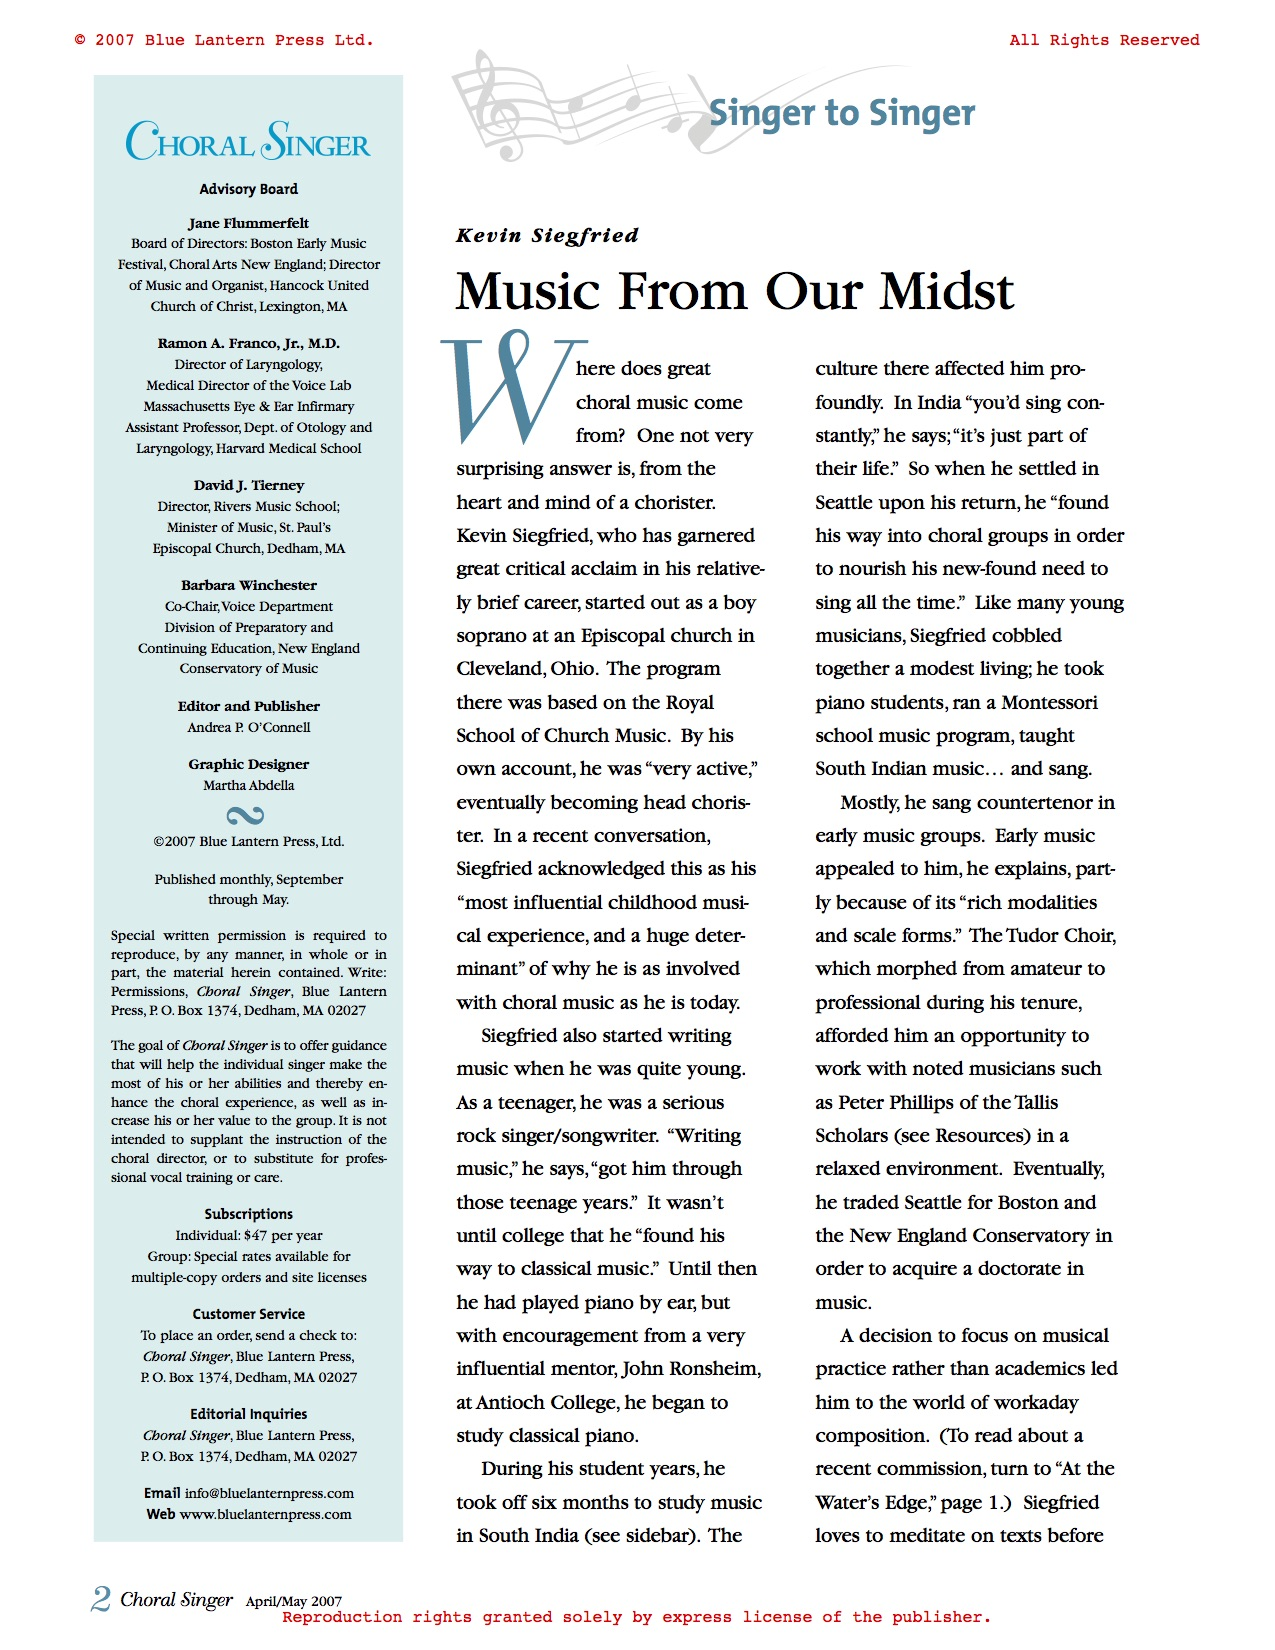 Music from Our Midst image.jpg